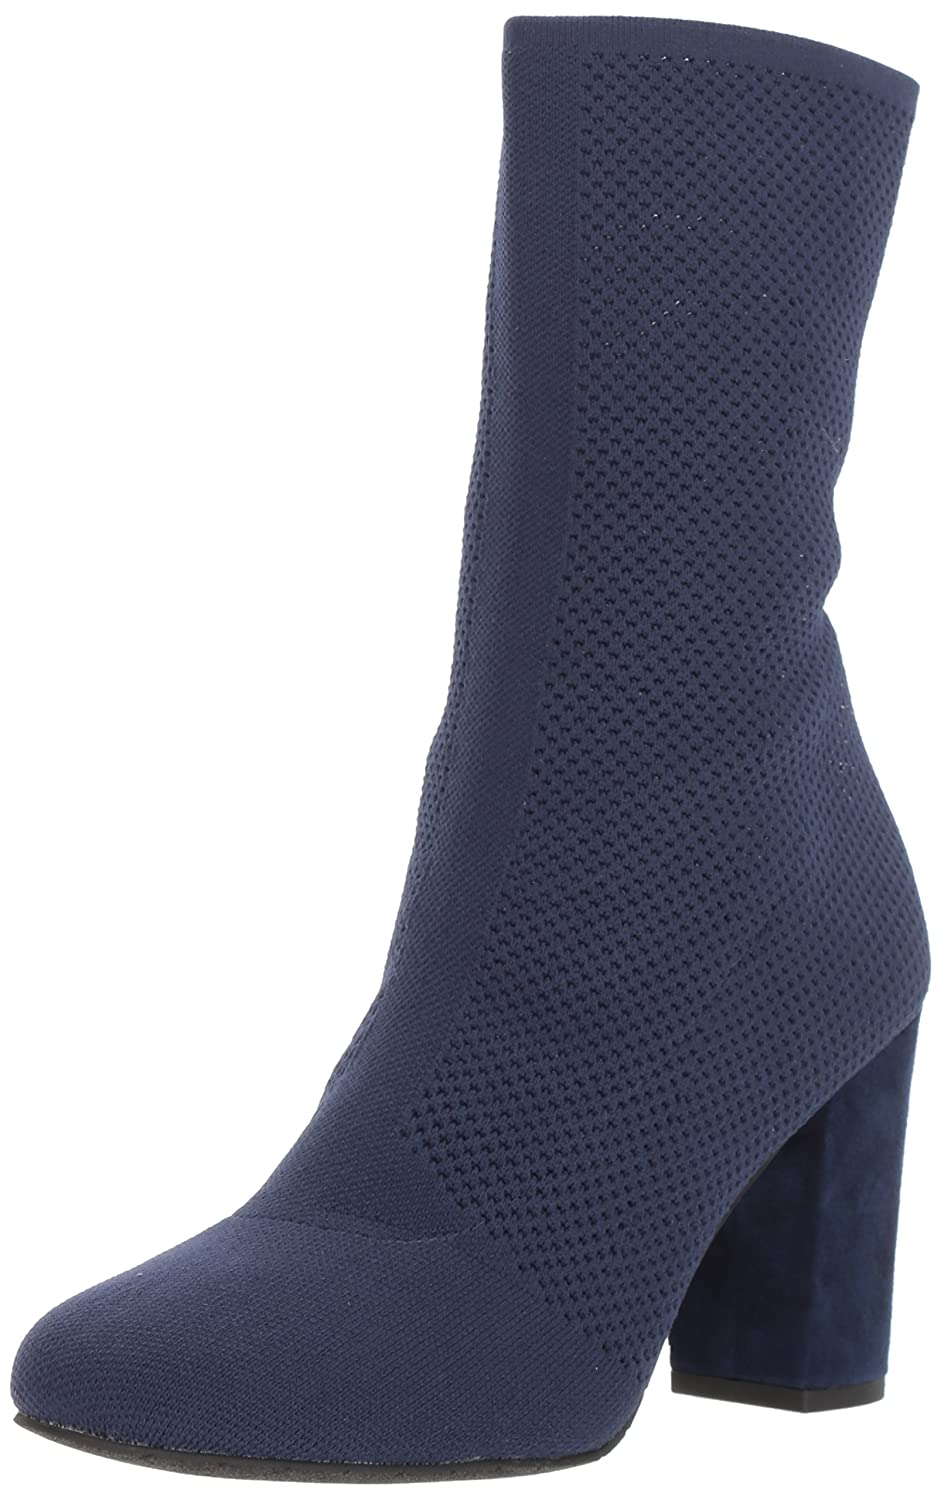 Kenneth Cole New York Women's Alyssa Stretch Shaft Heel Ankle Boot B073XK18PV 5 B(M) US|Navy